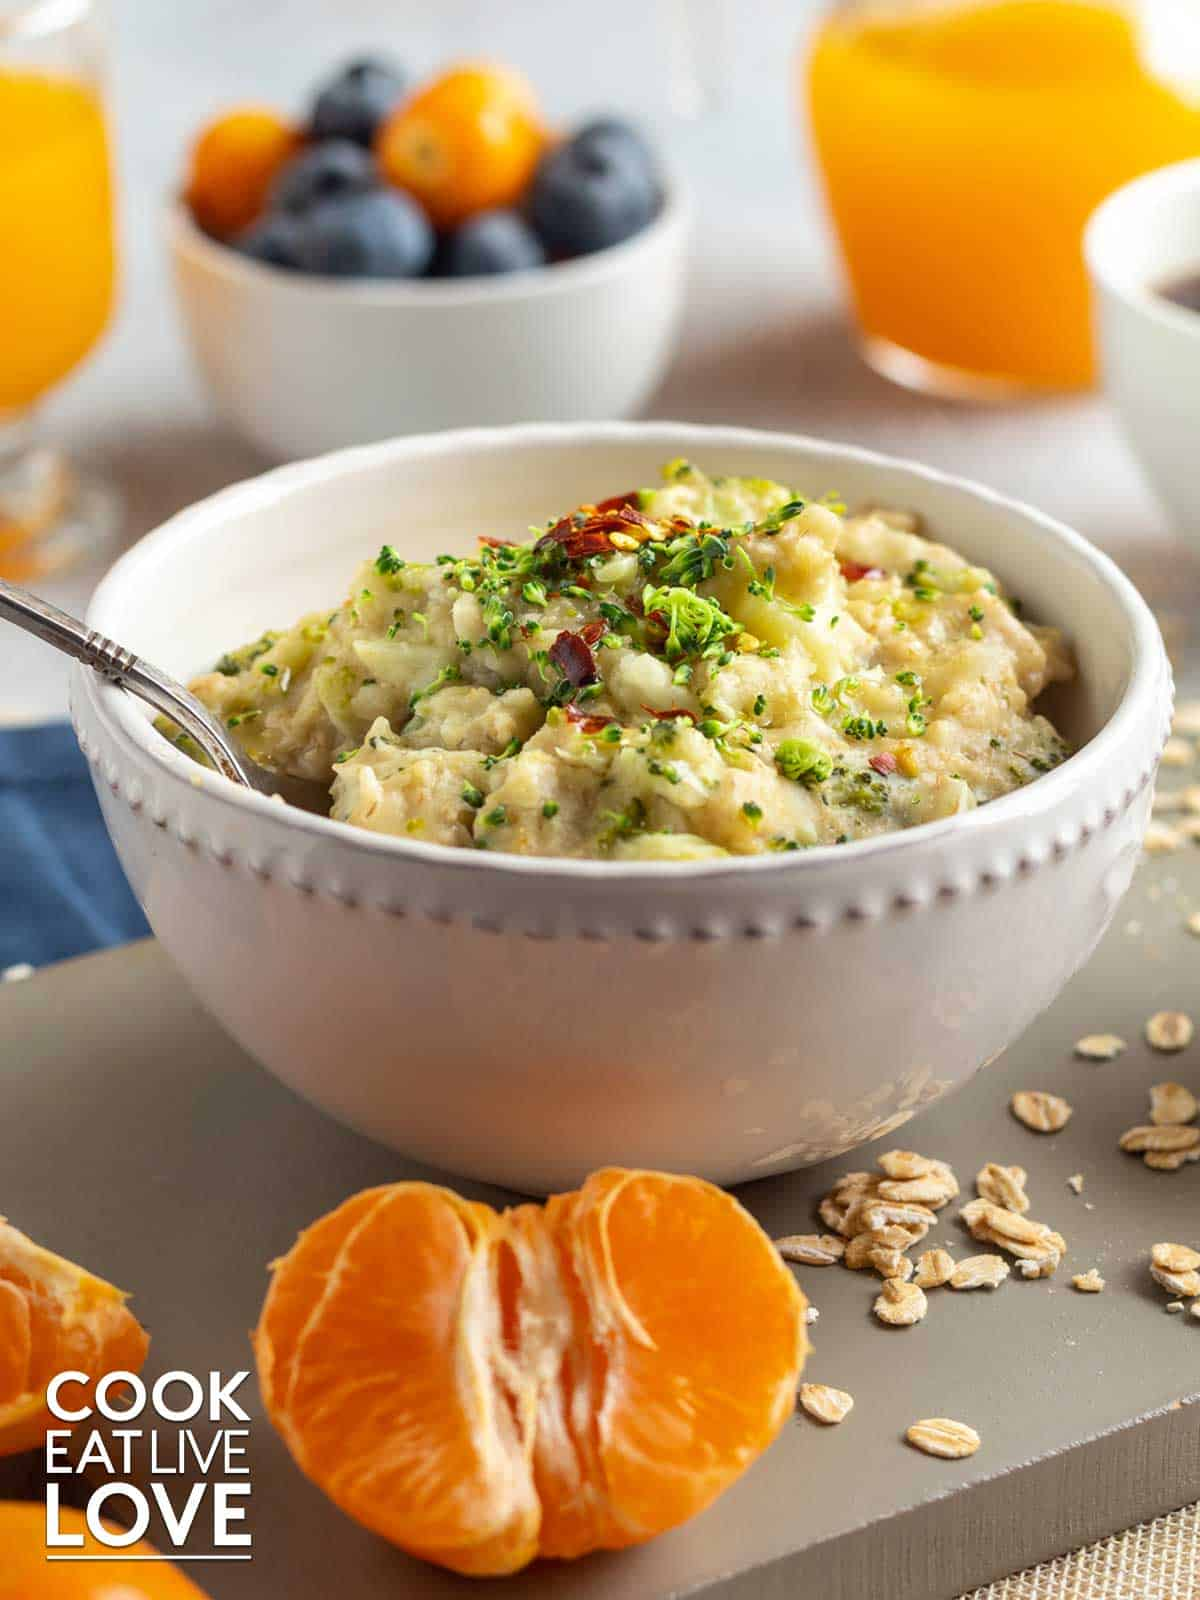 Bowl of savory oats served up for breakfast.